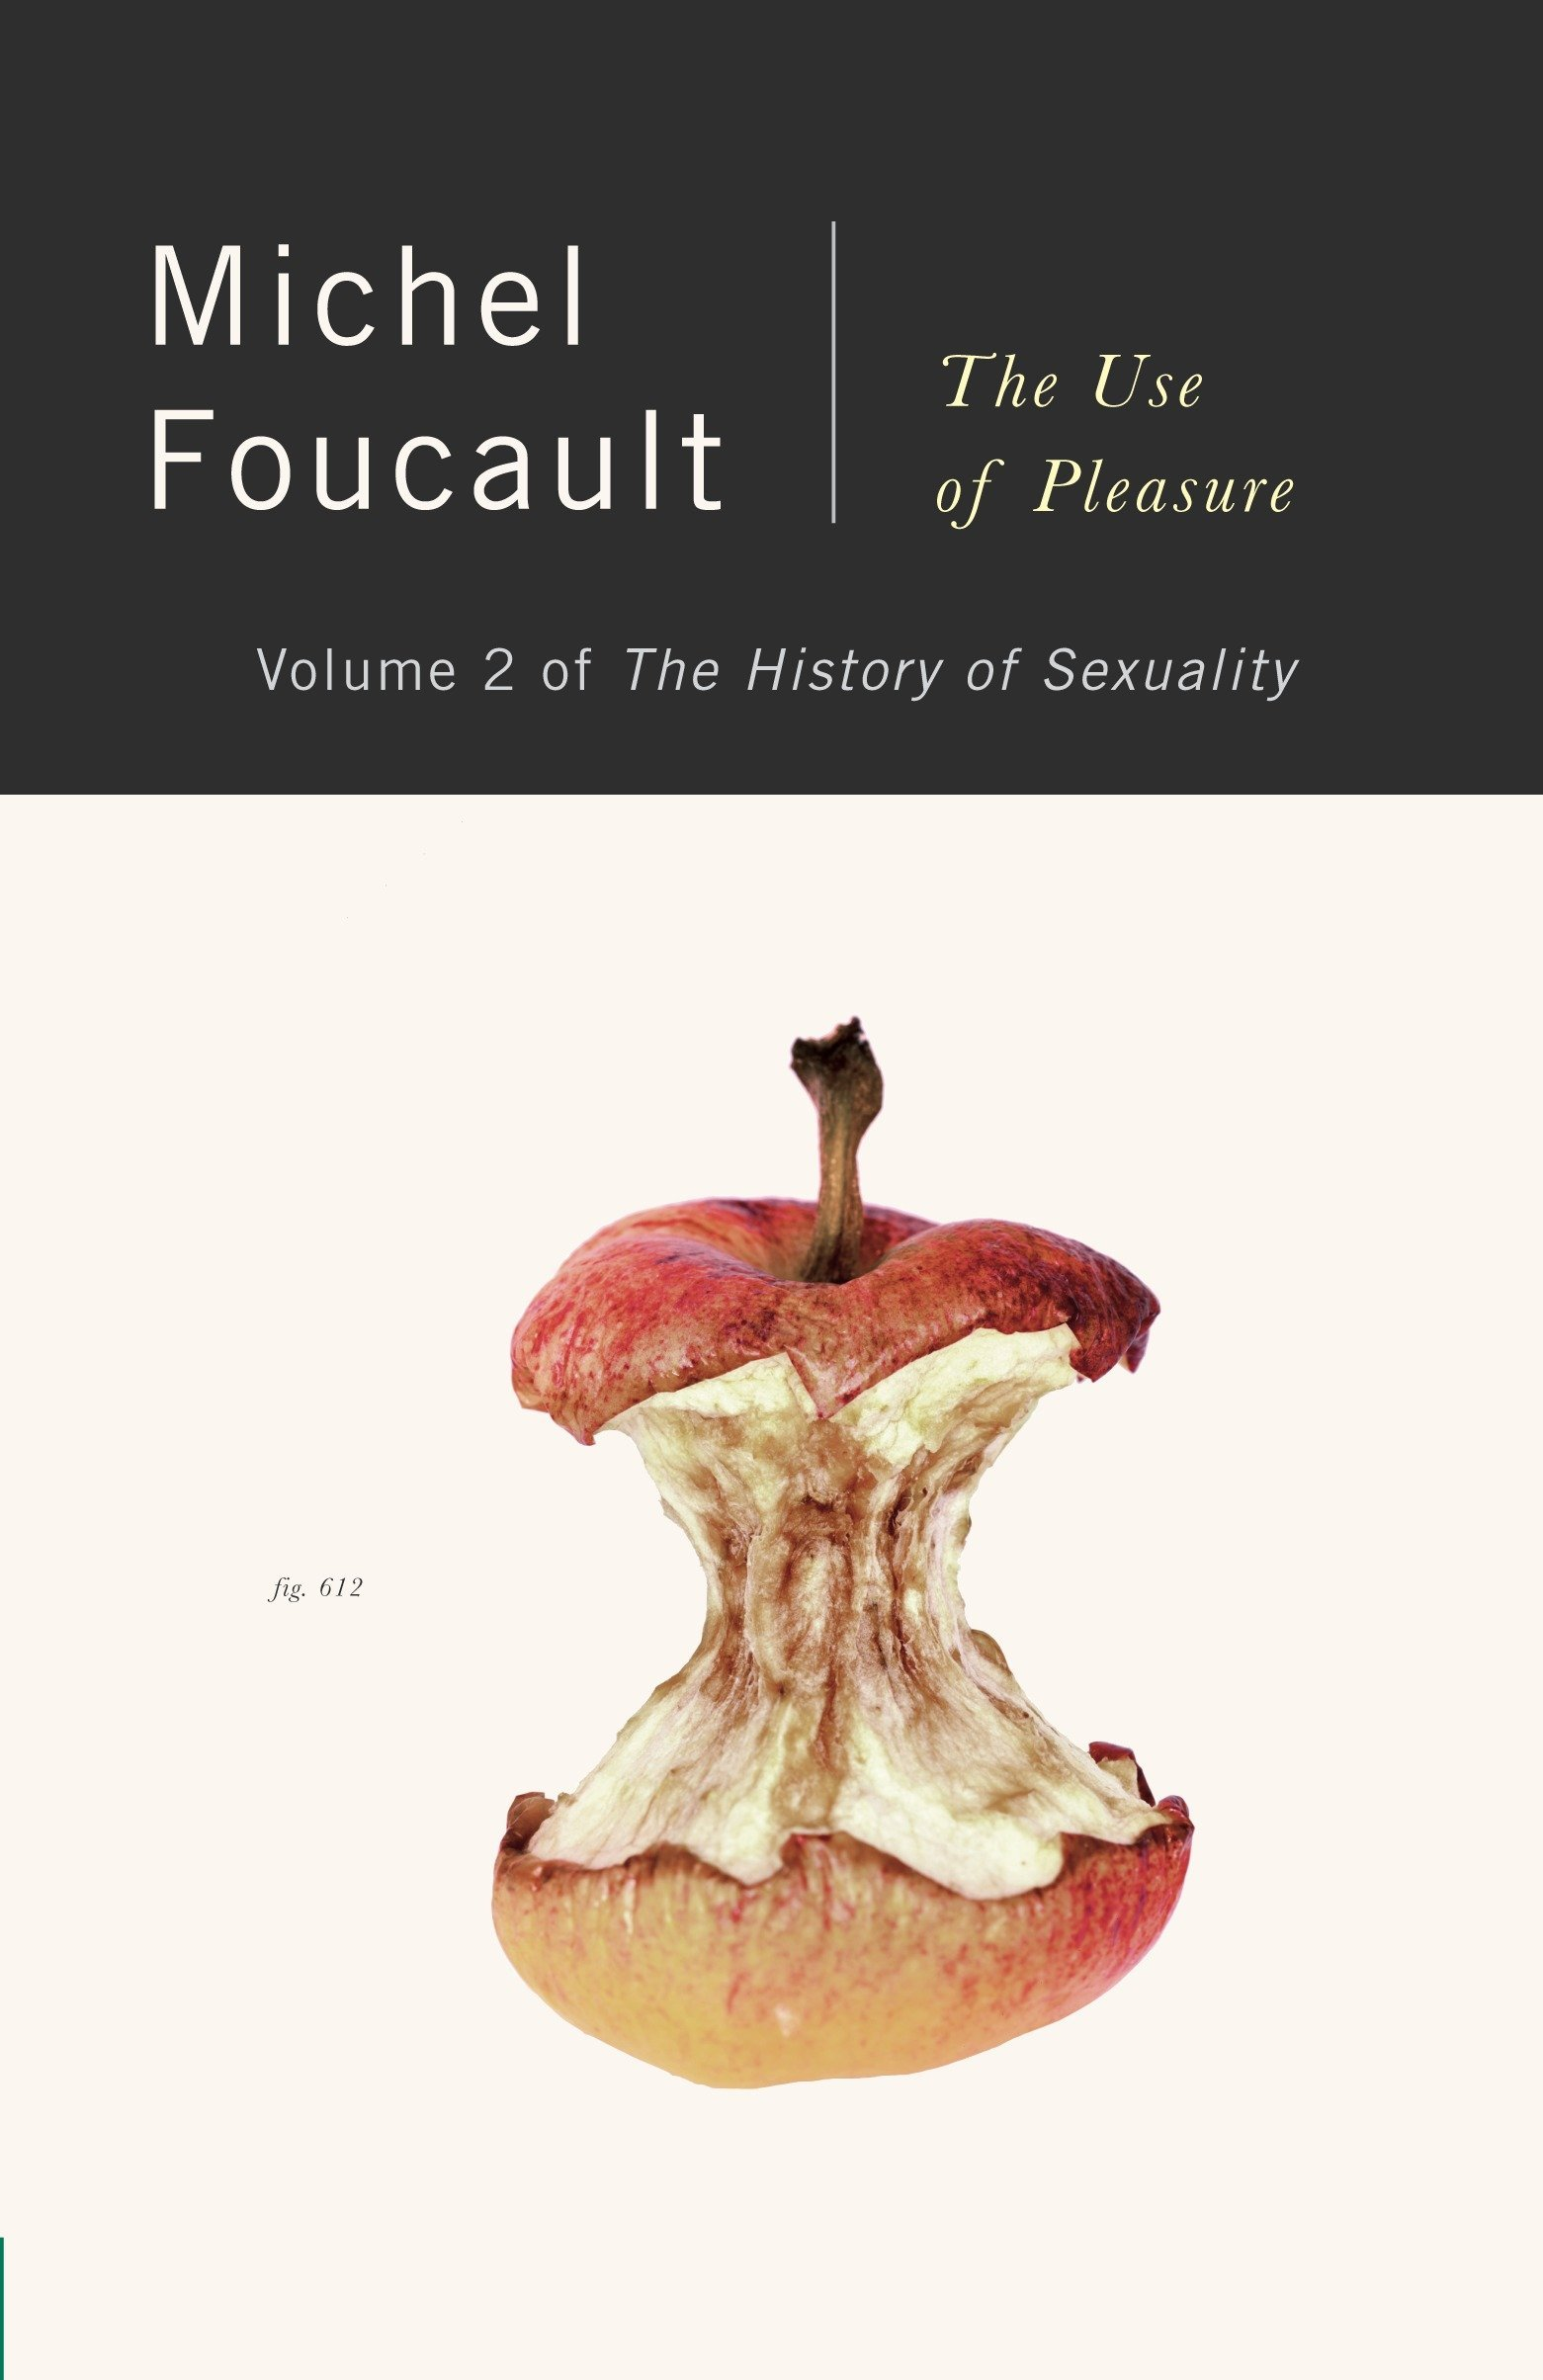 The History of Sexuality, Vol. 2: The Use of Pleasure (The Ahaistory of Sexuality, Volume 2)